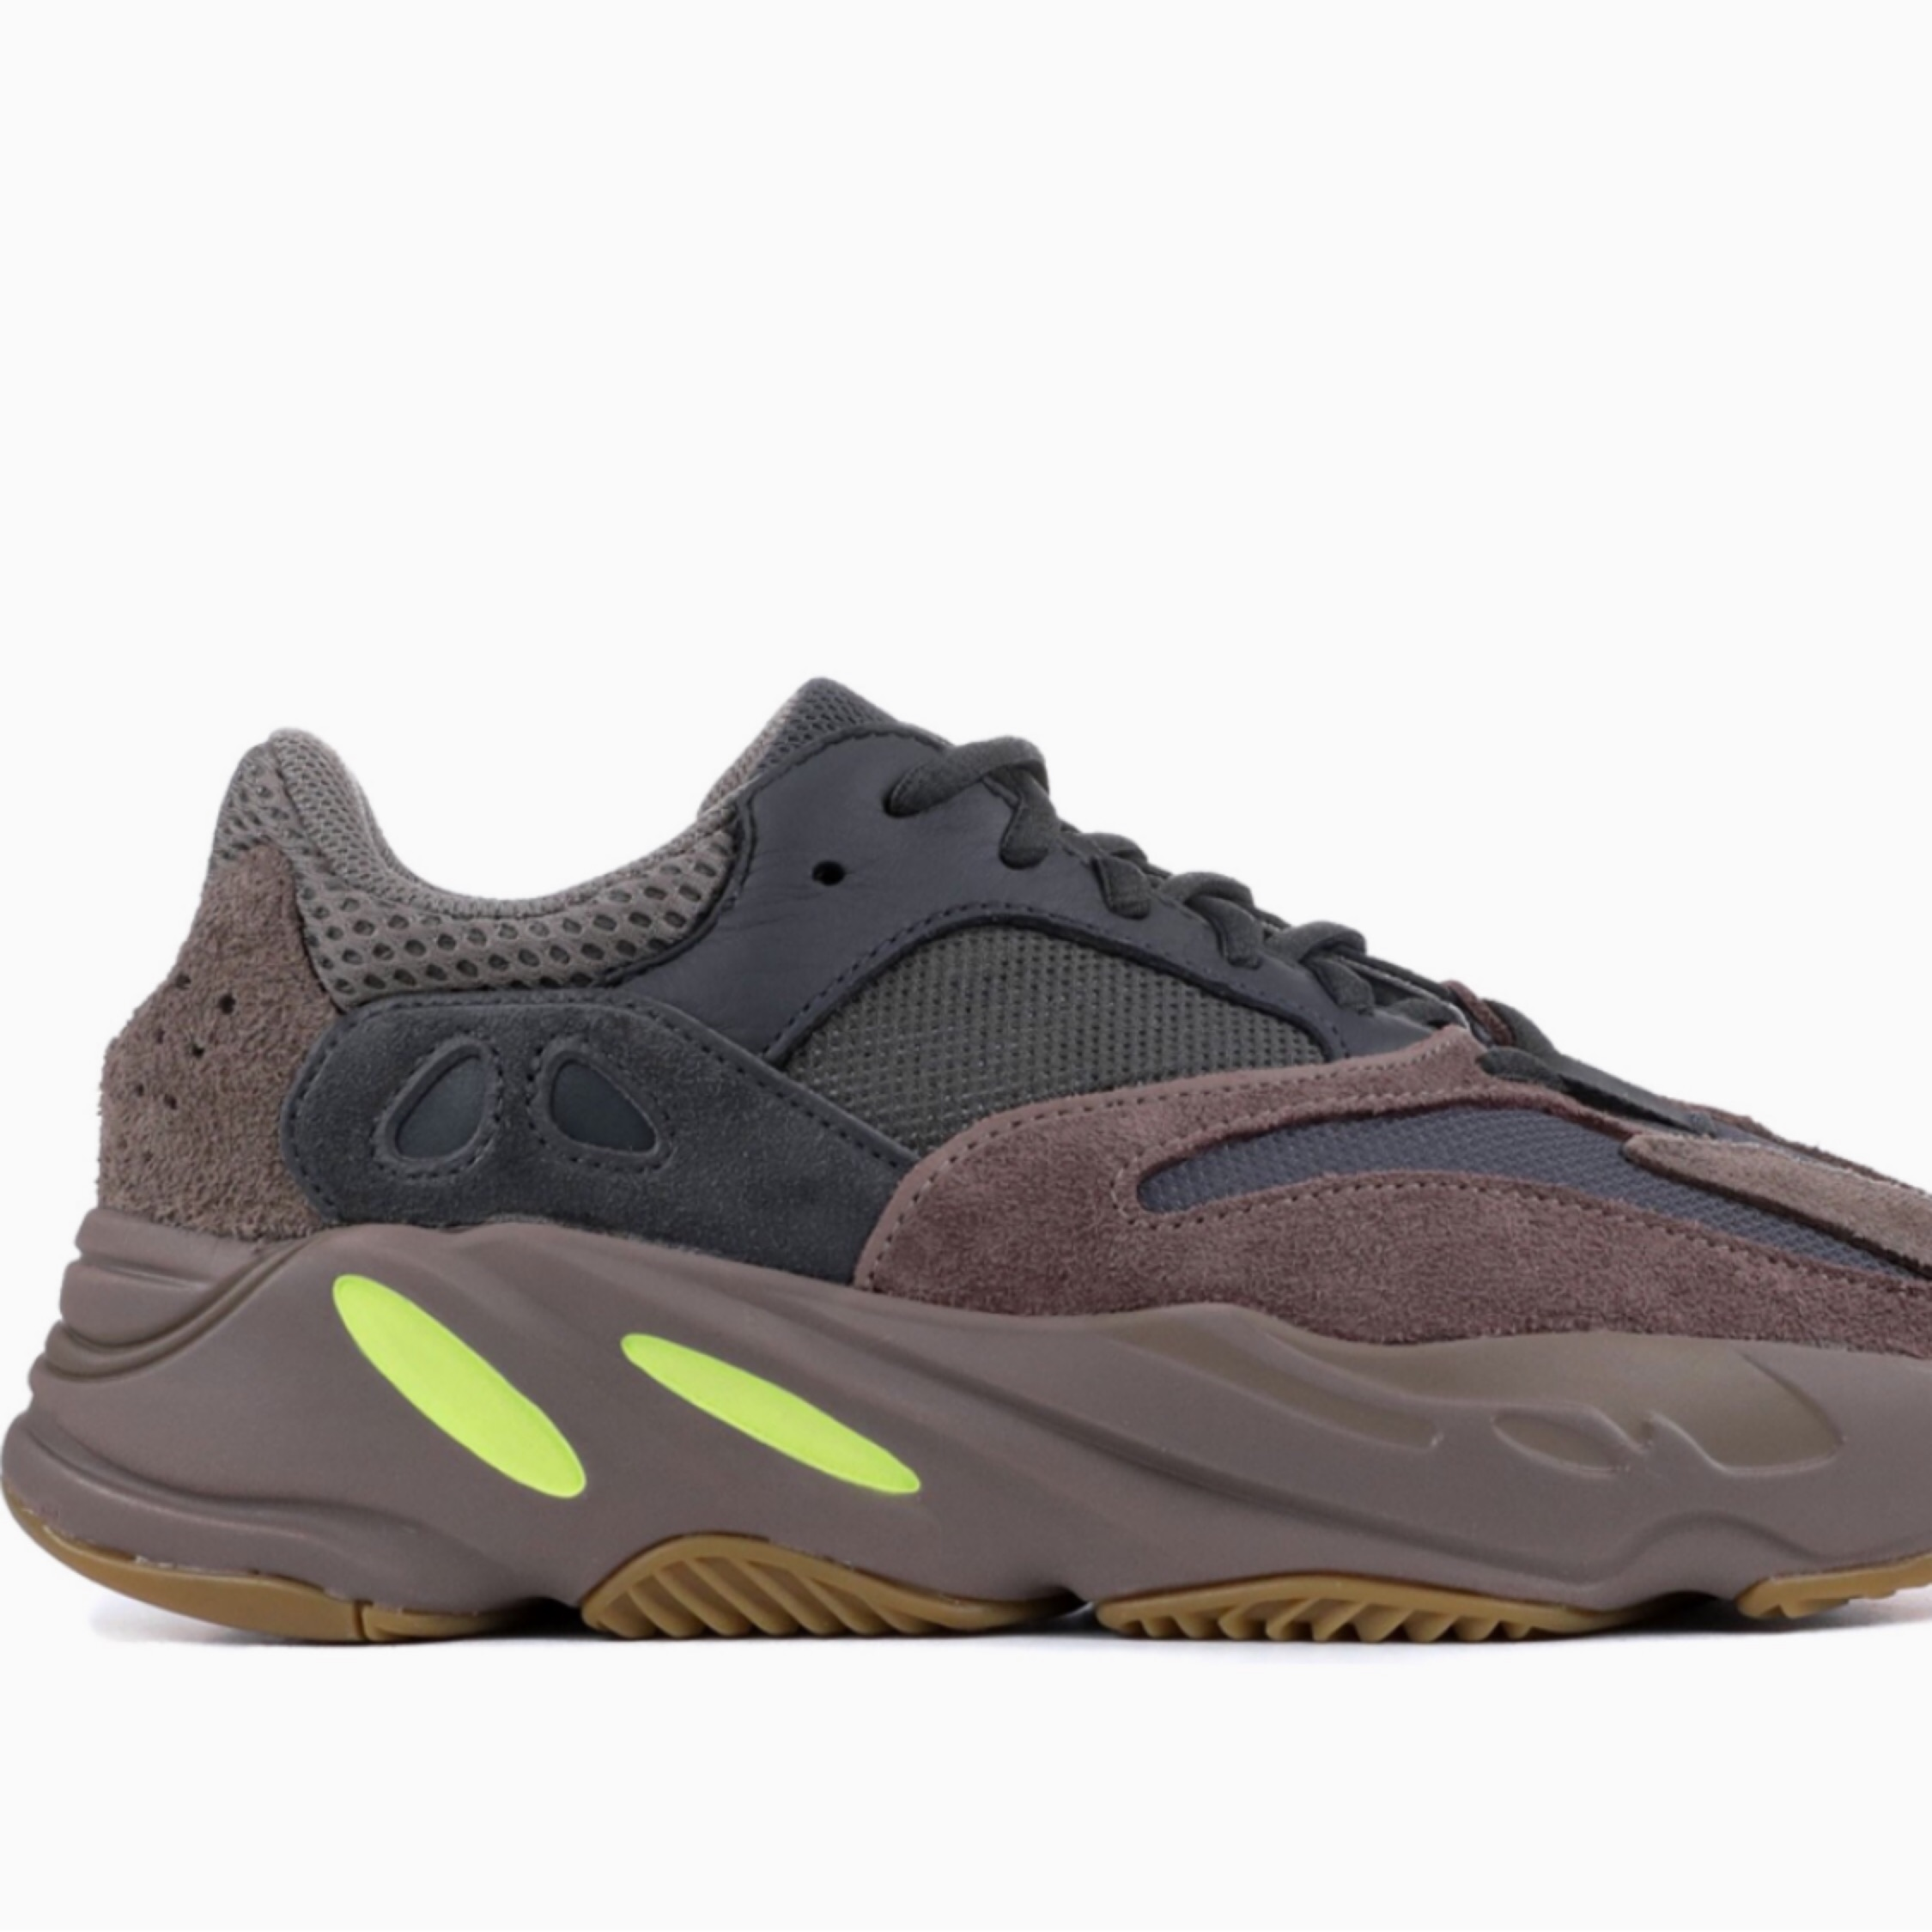 official photos b5436 6da33 Adidas Yeezy 700 Mauve